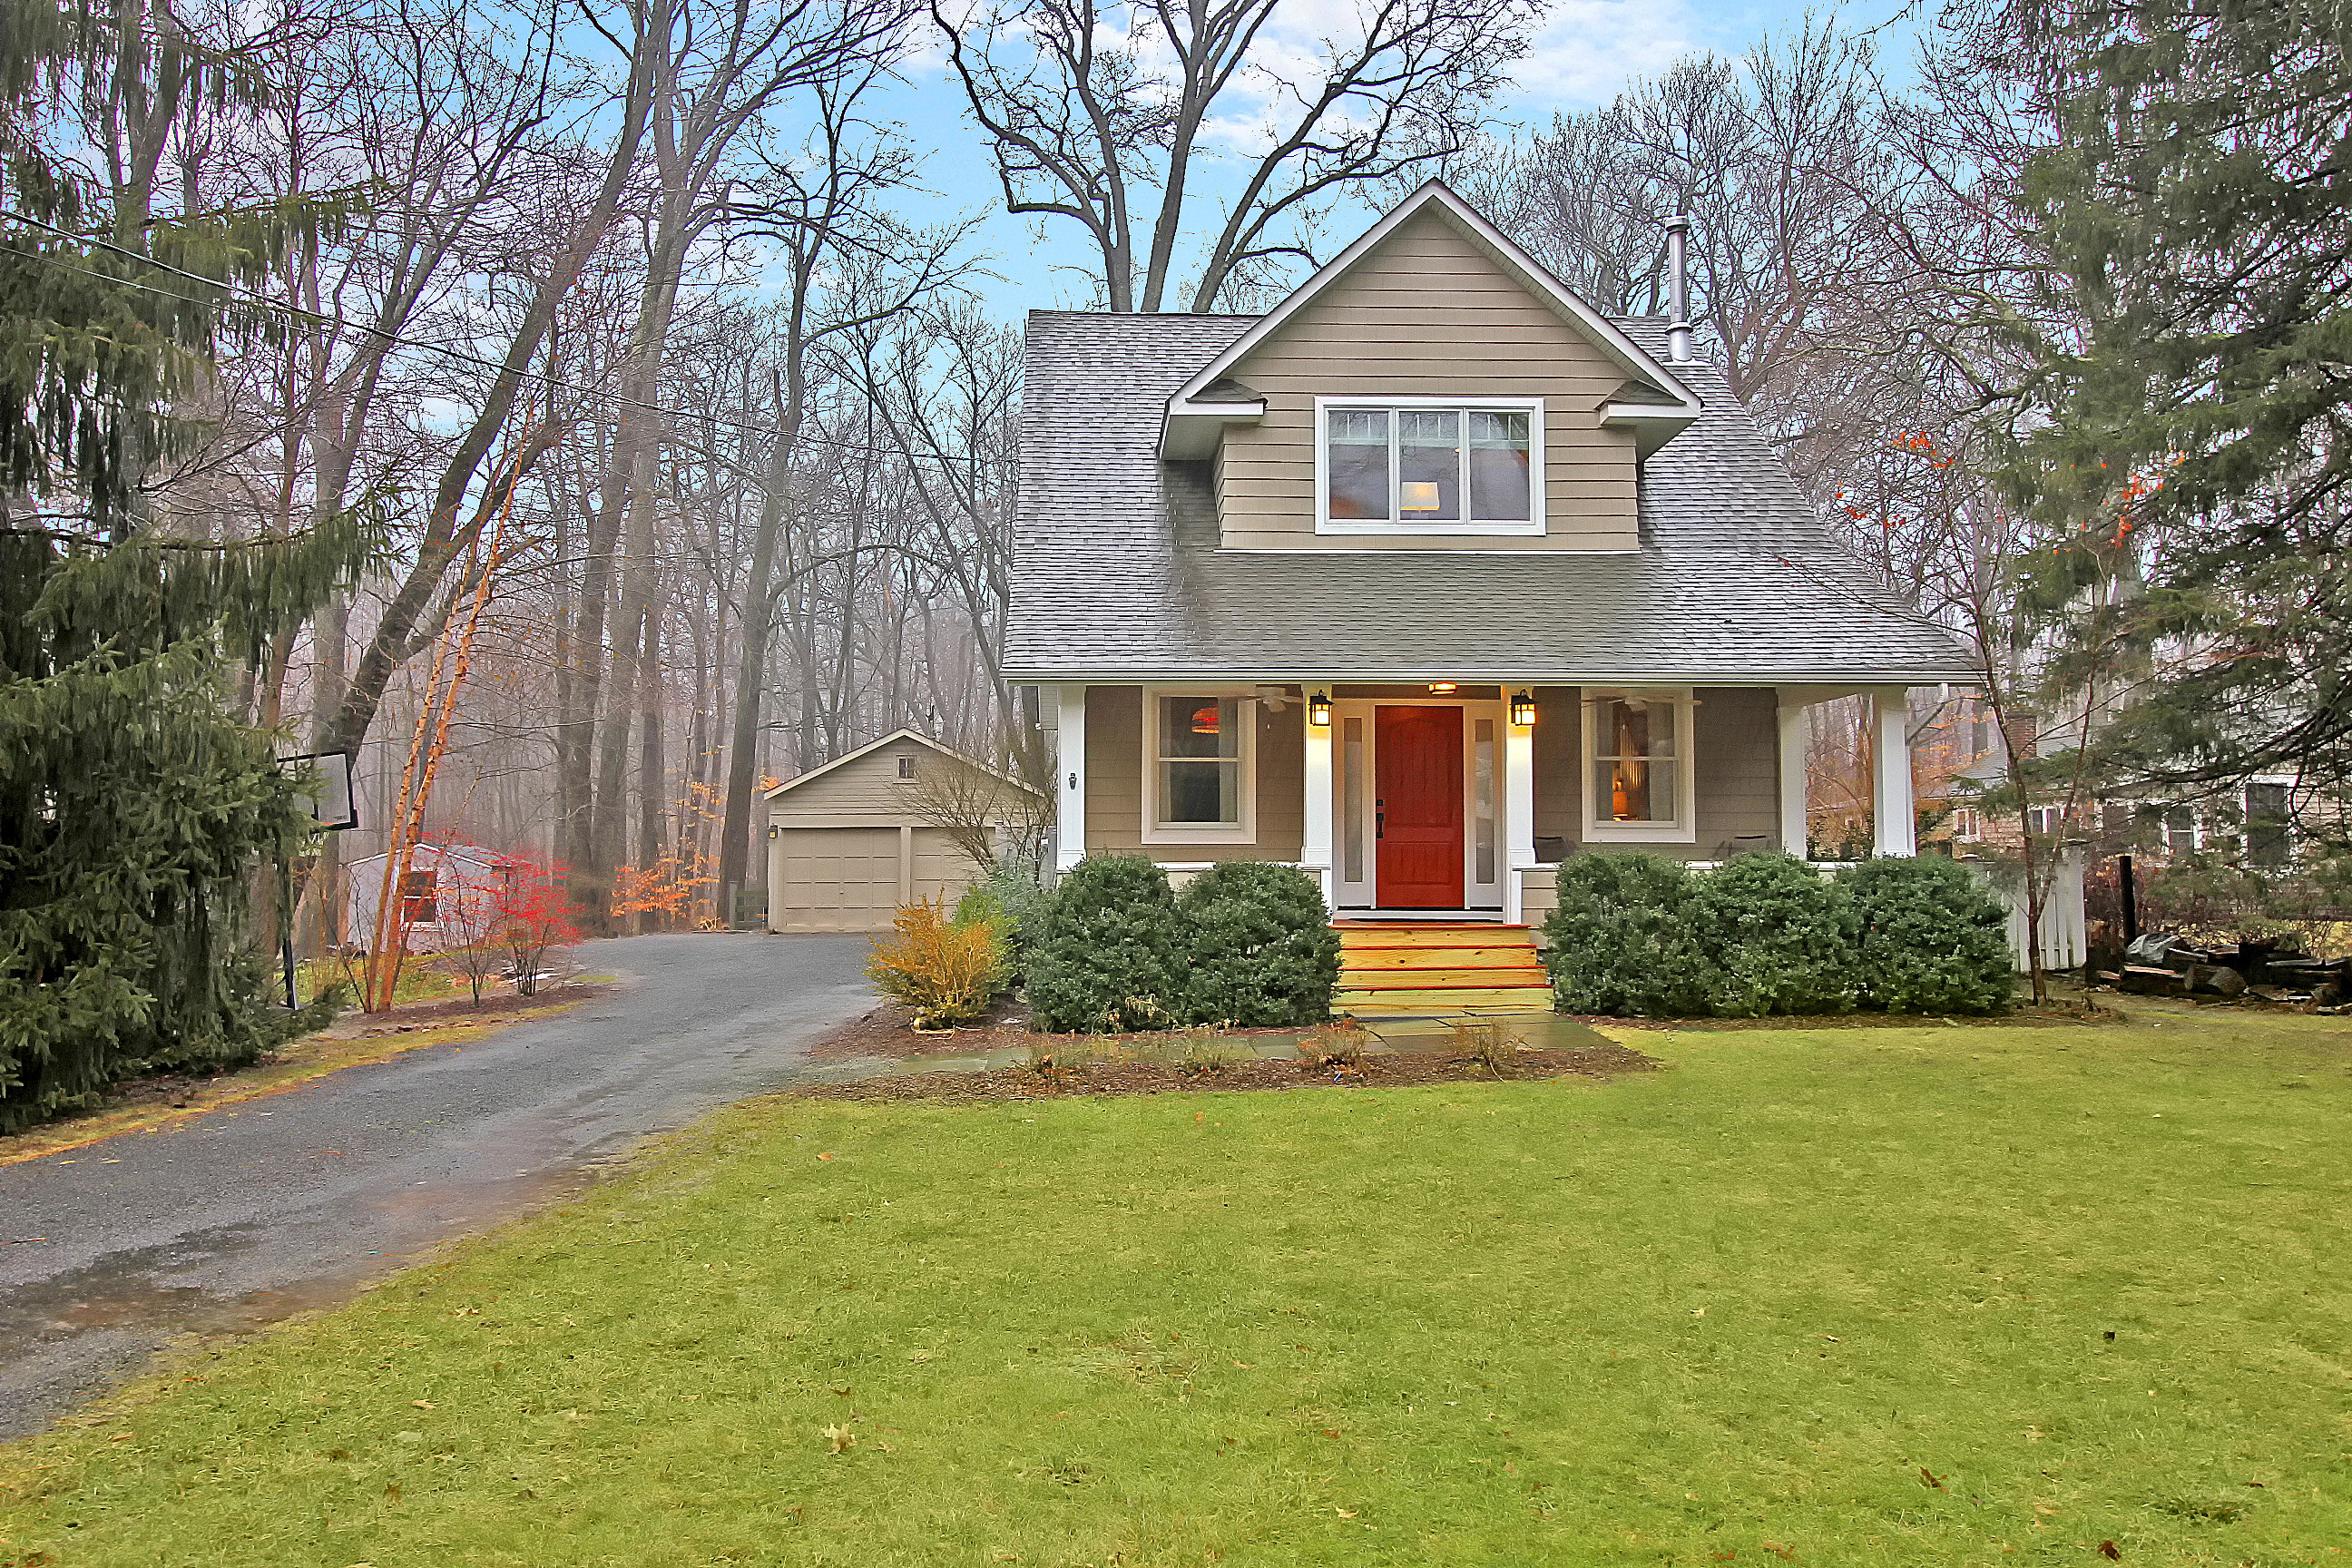 Singles in long hill new jersey Find Real Estate, Homes for Sale, Apartments & Houses for Rent - ®